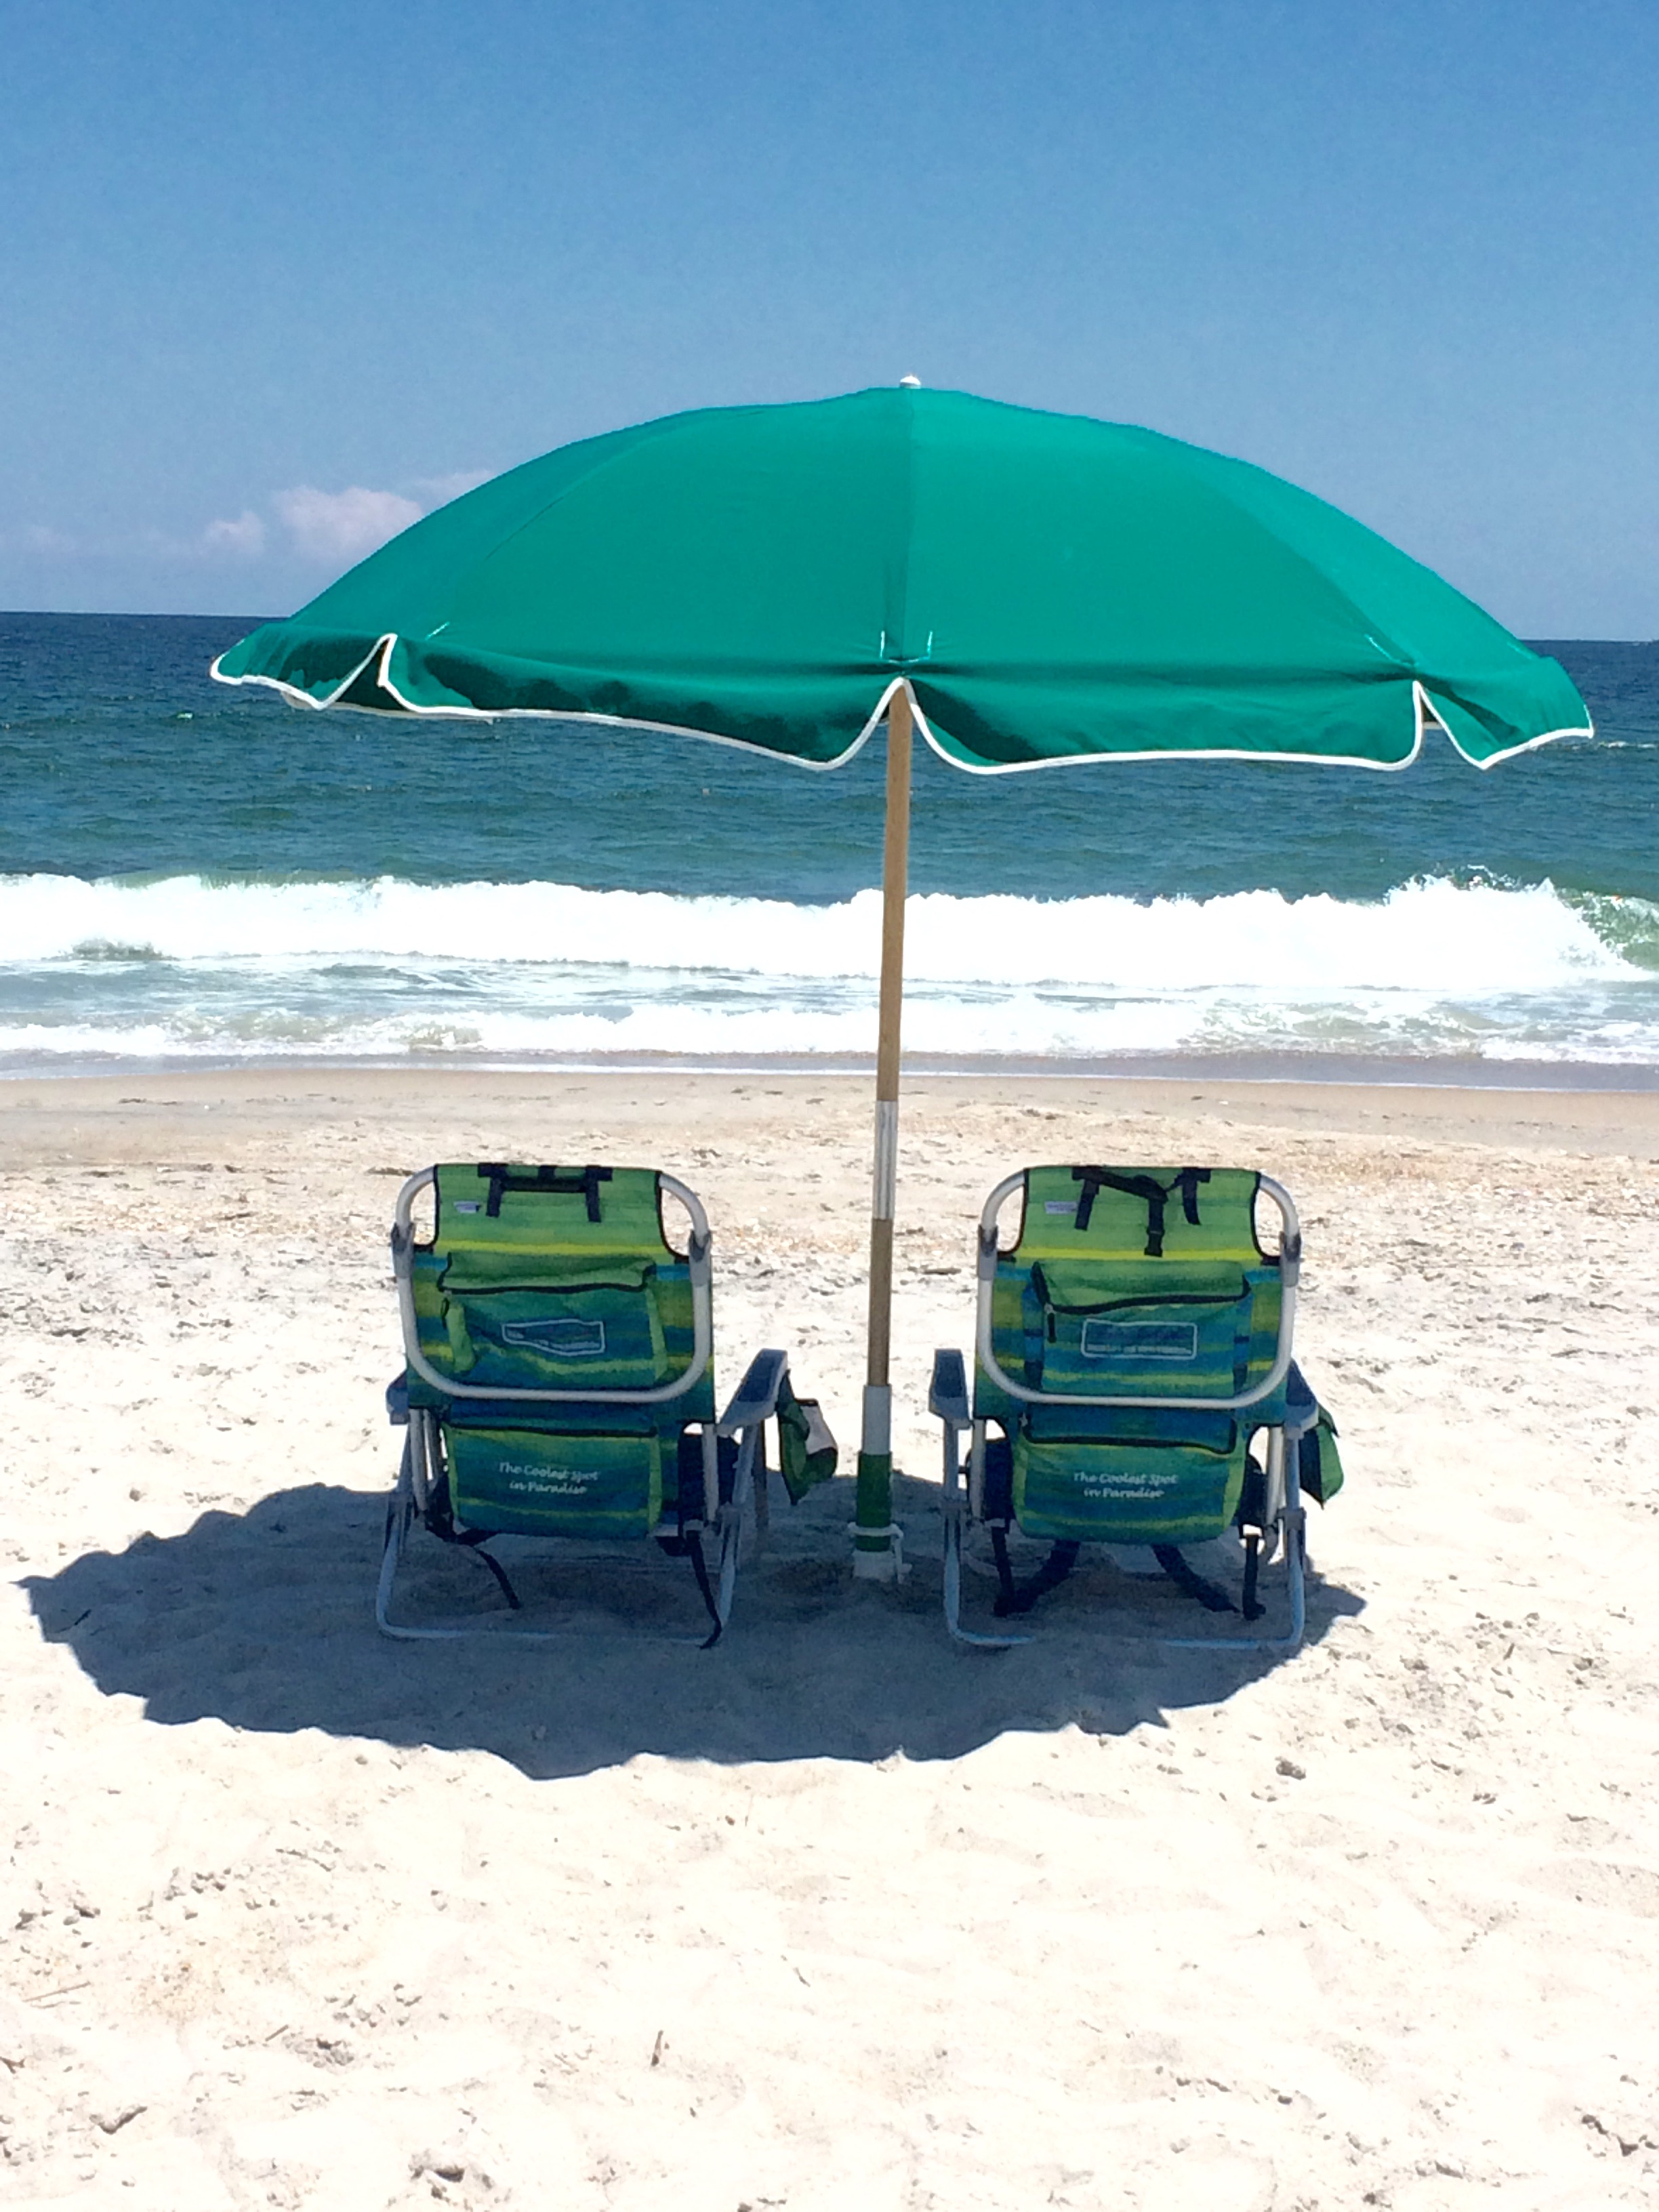 Backpack Beach Set Wrightsville Beach Chair Umbrella & Cabana